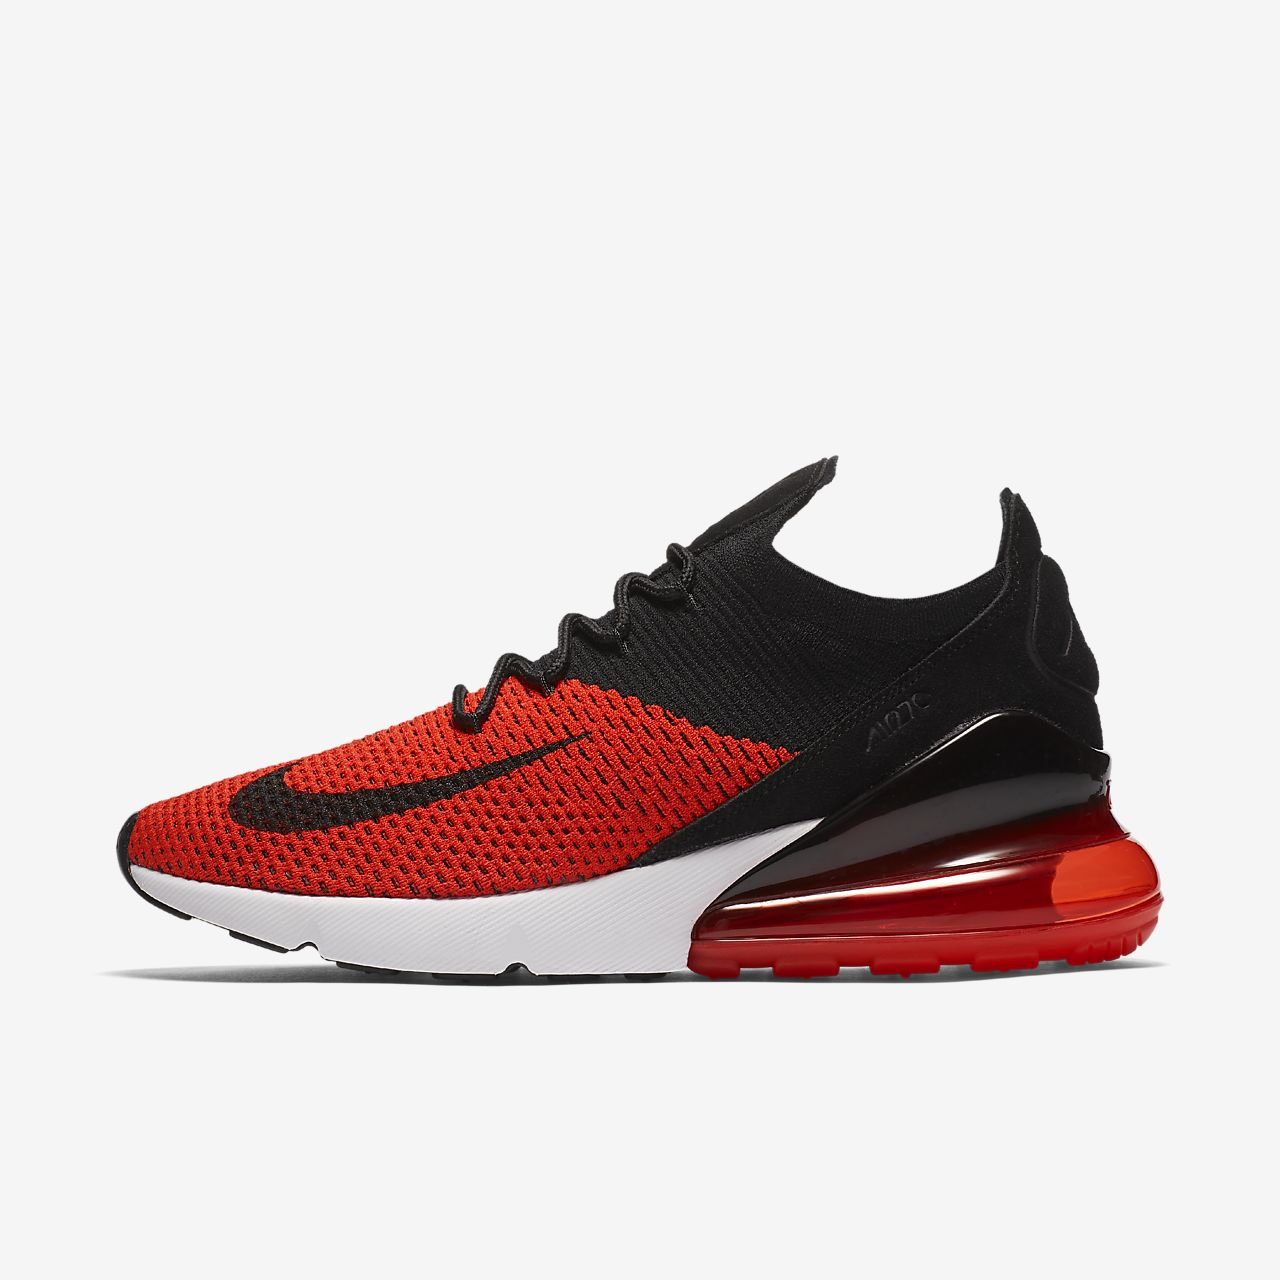 finest selection 60153 07ca3 ... Nike Air Max 270 Flyknit Men s Shoe